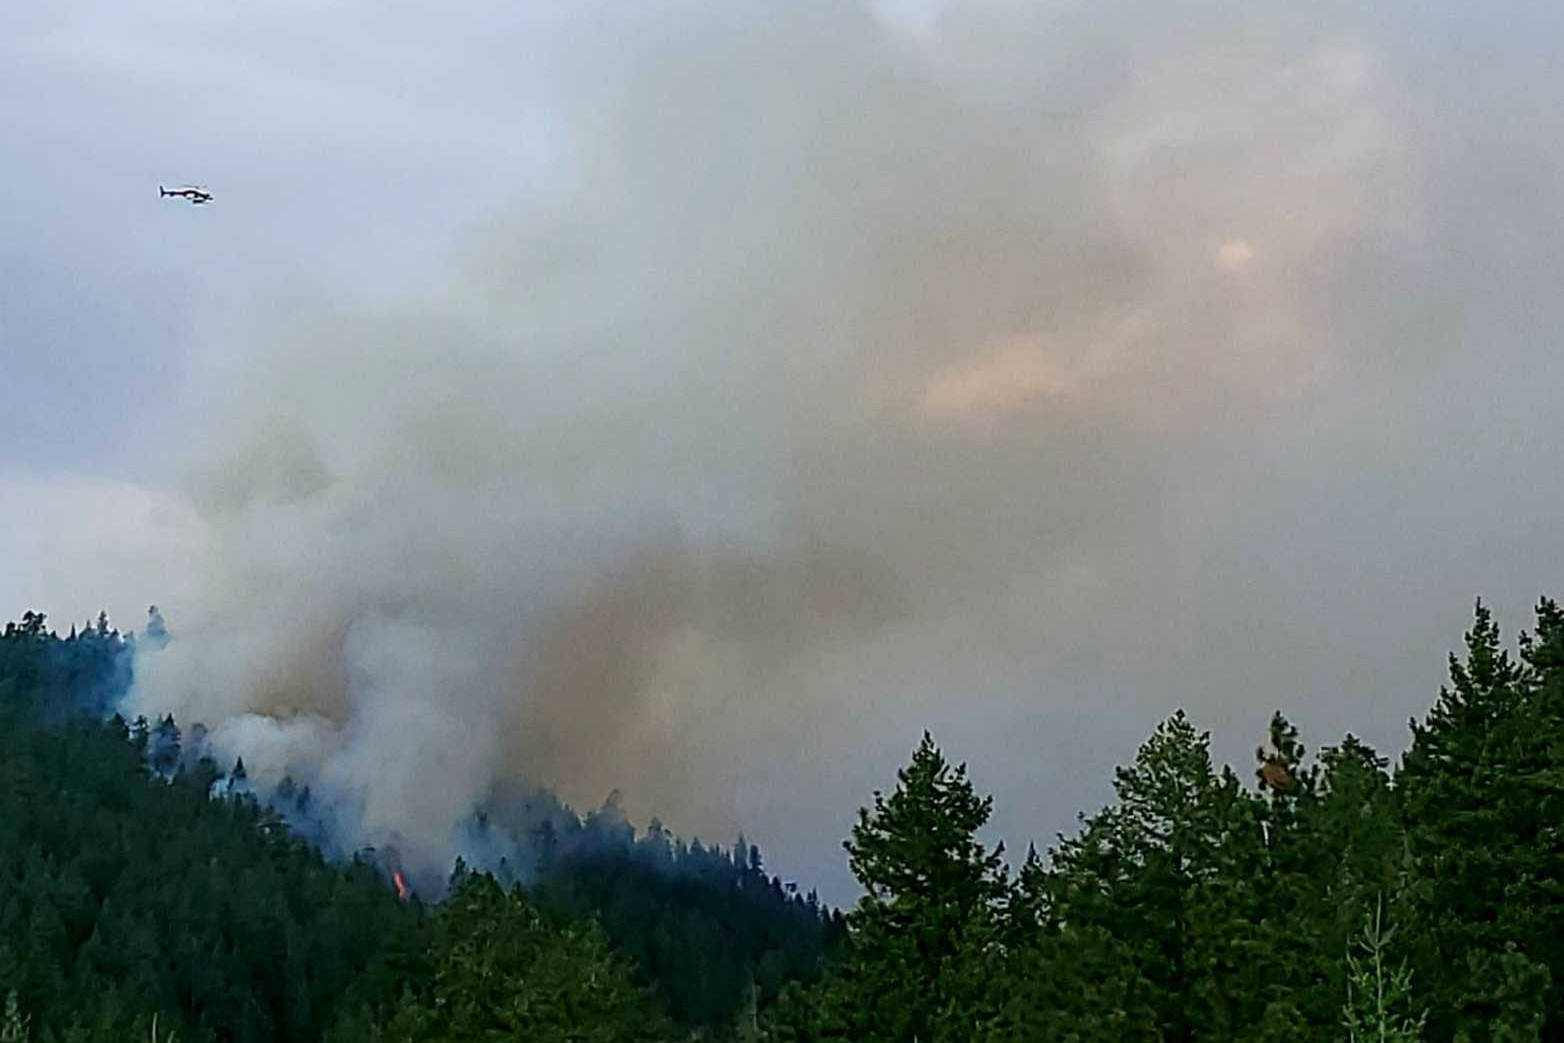 Smoke and a helicopter visible near Peachland on Sunday, Aug. 15. (Kerry Hutter photo)